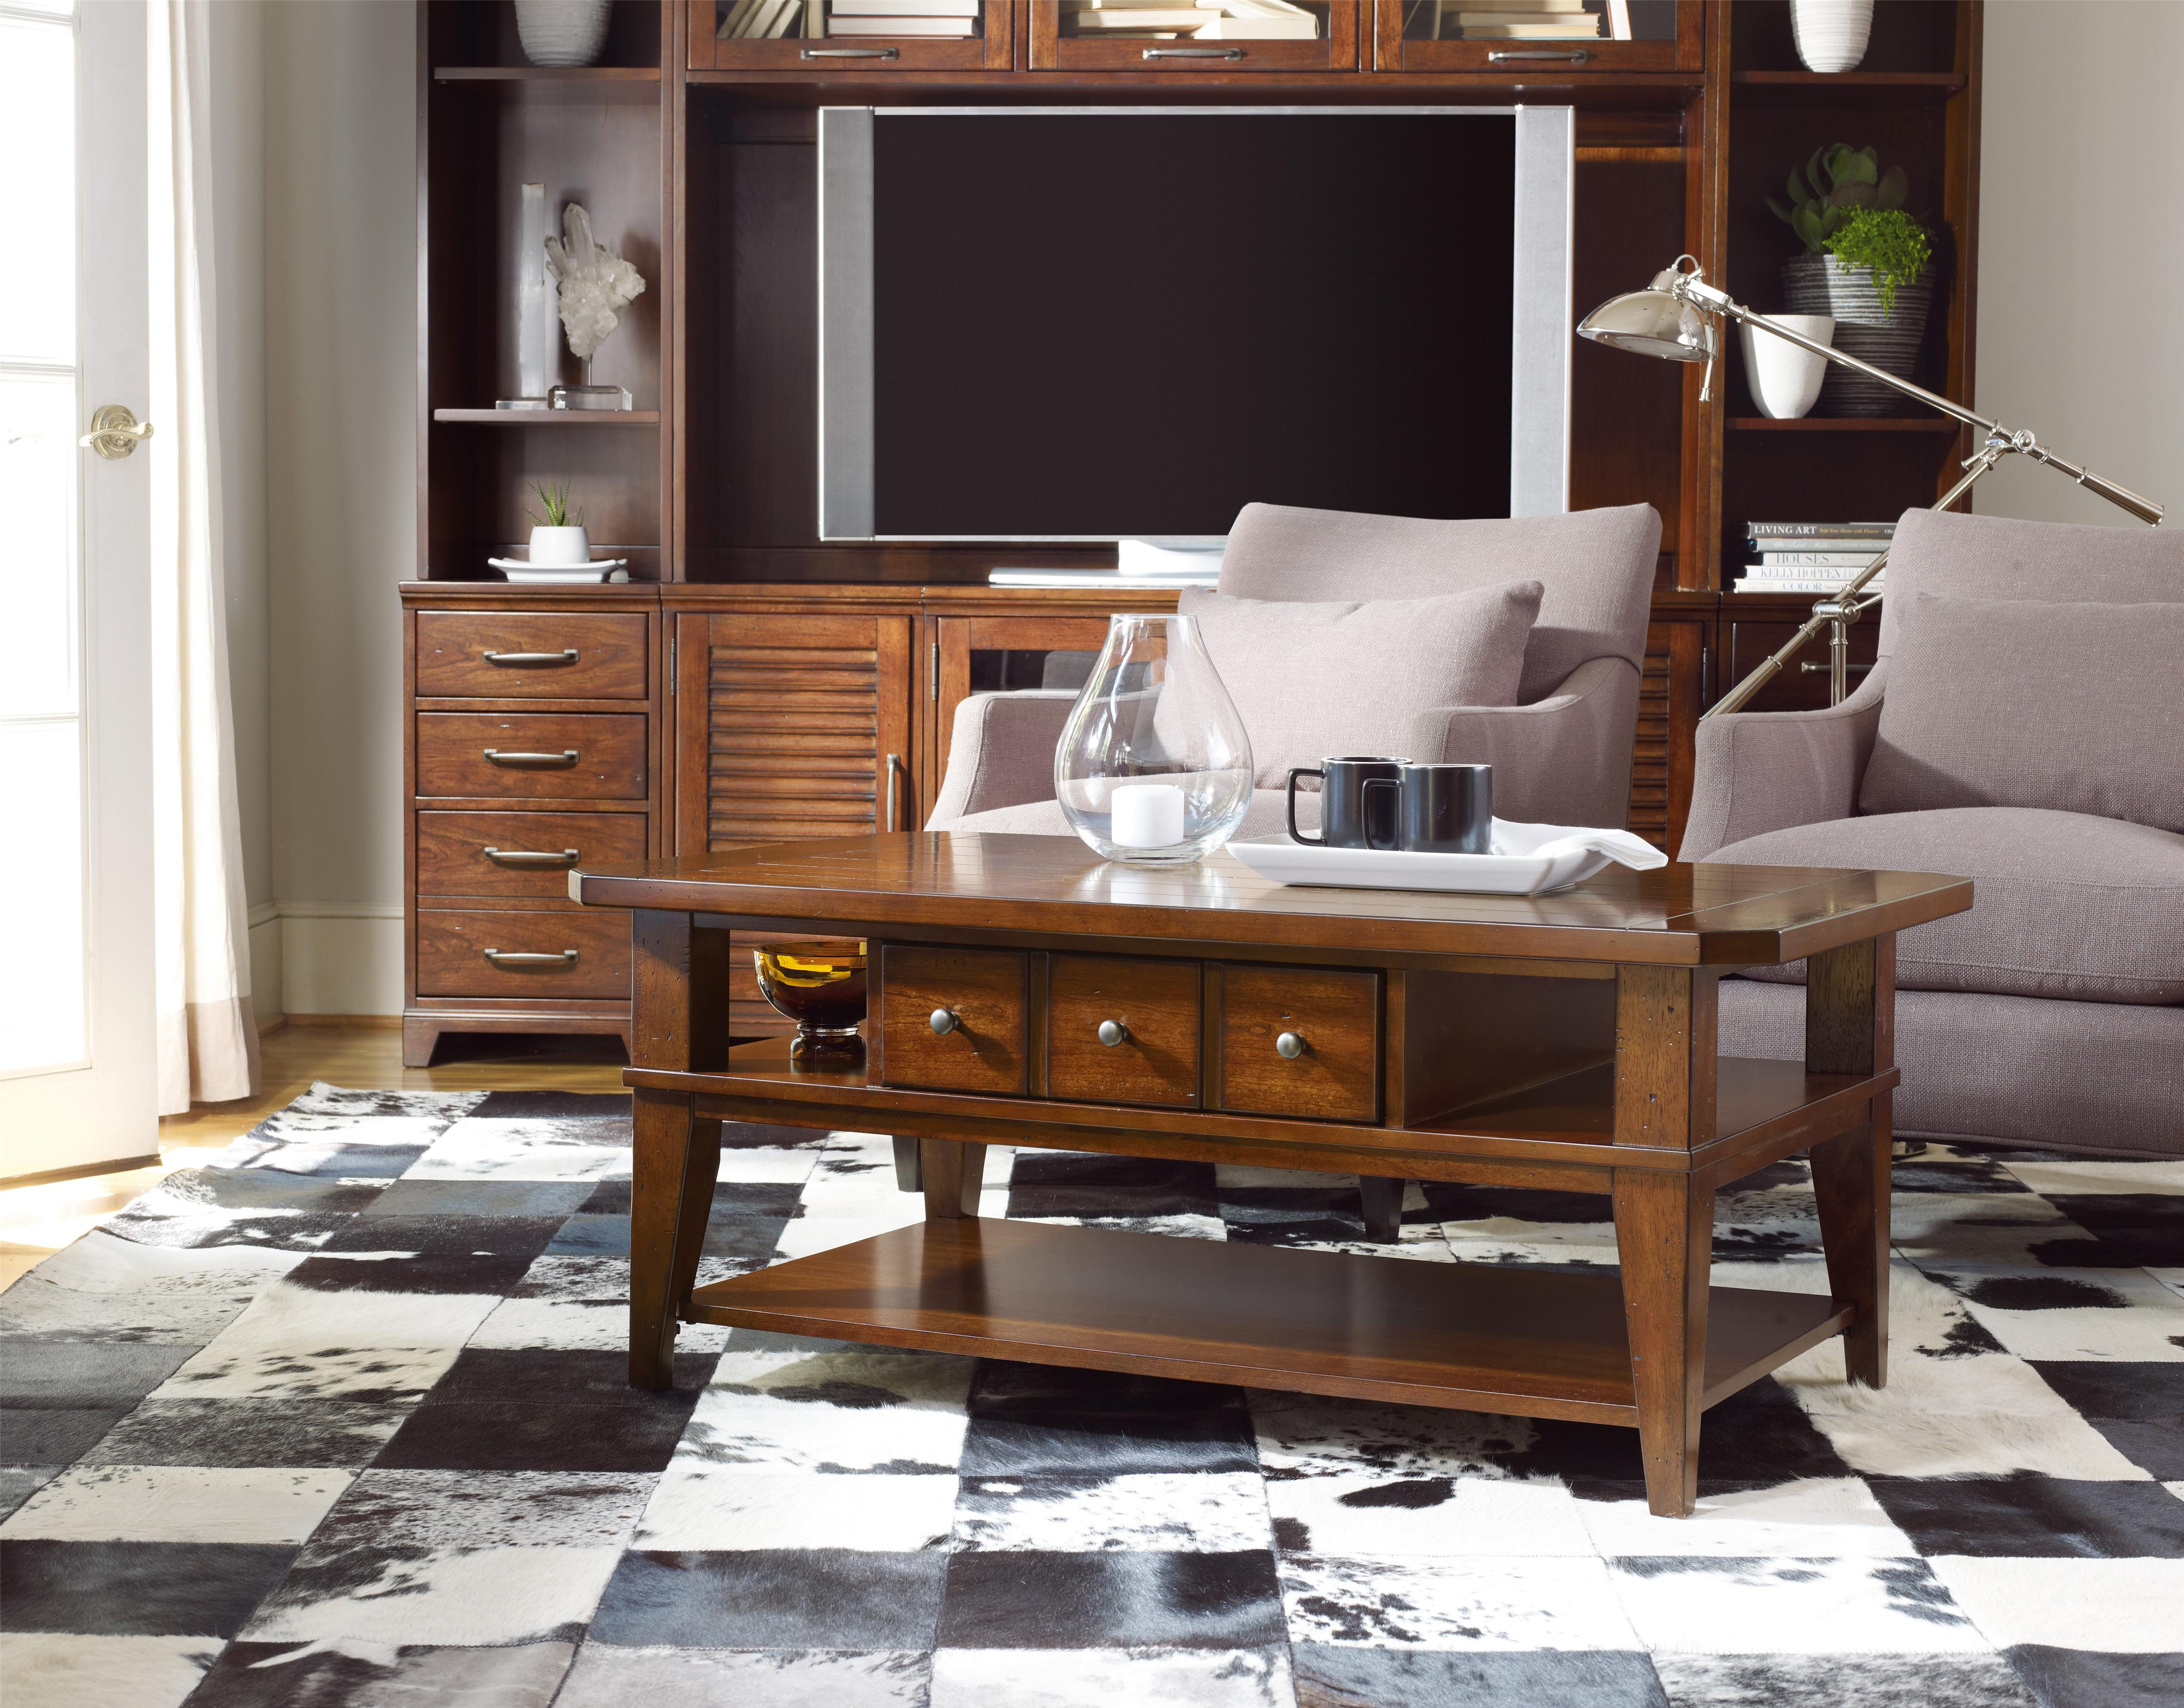 best harveys sofa berkshiresofa store chairs sectional sale of with for inspirations image victorian used useds furniture chaise oh gumtree in vasofa size deals full colorado frightening mentor and